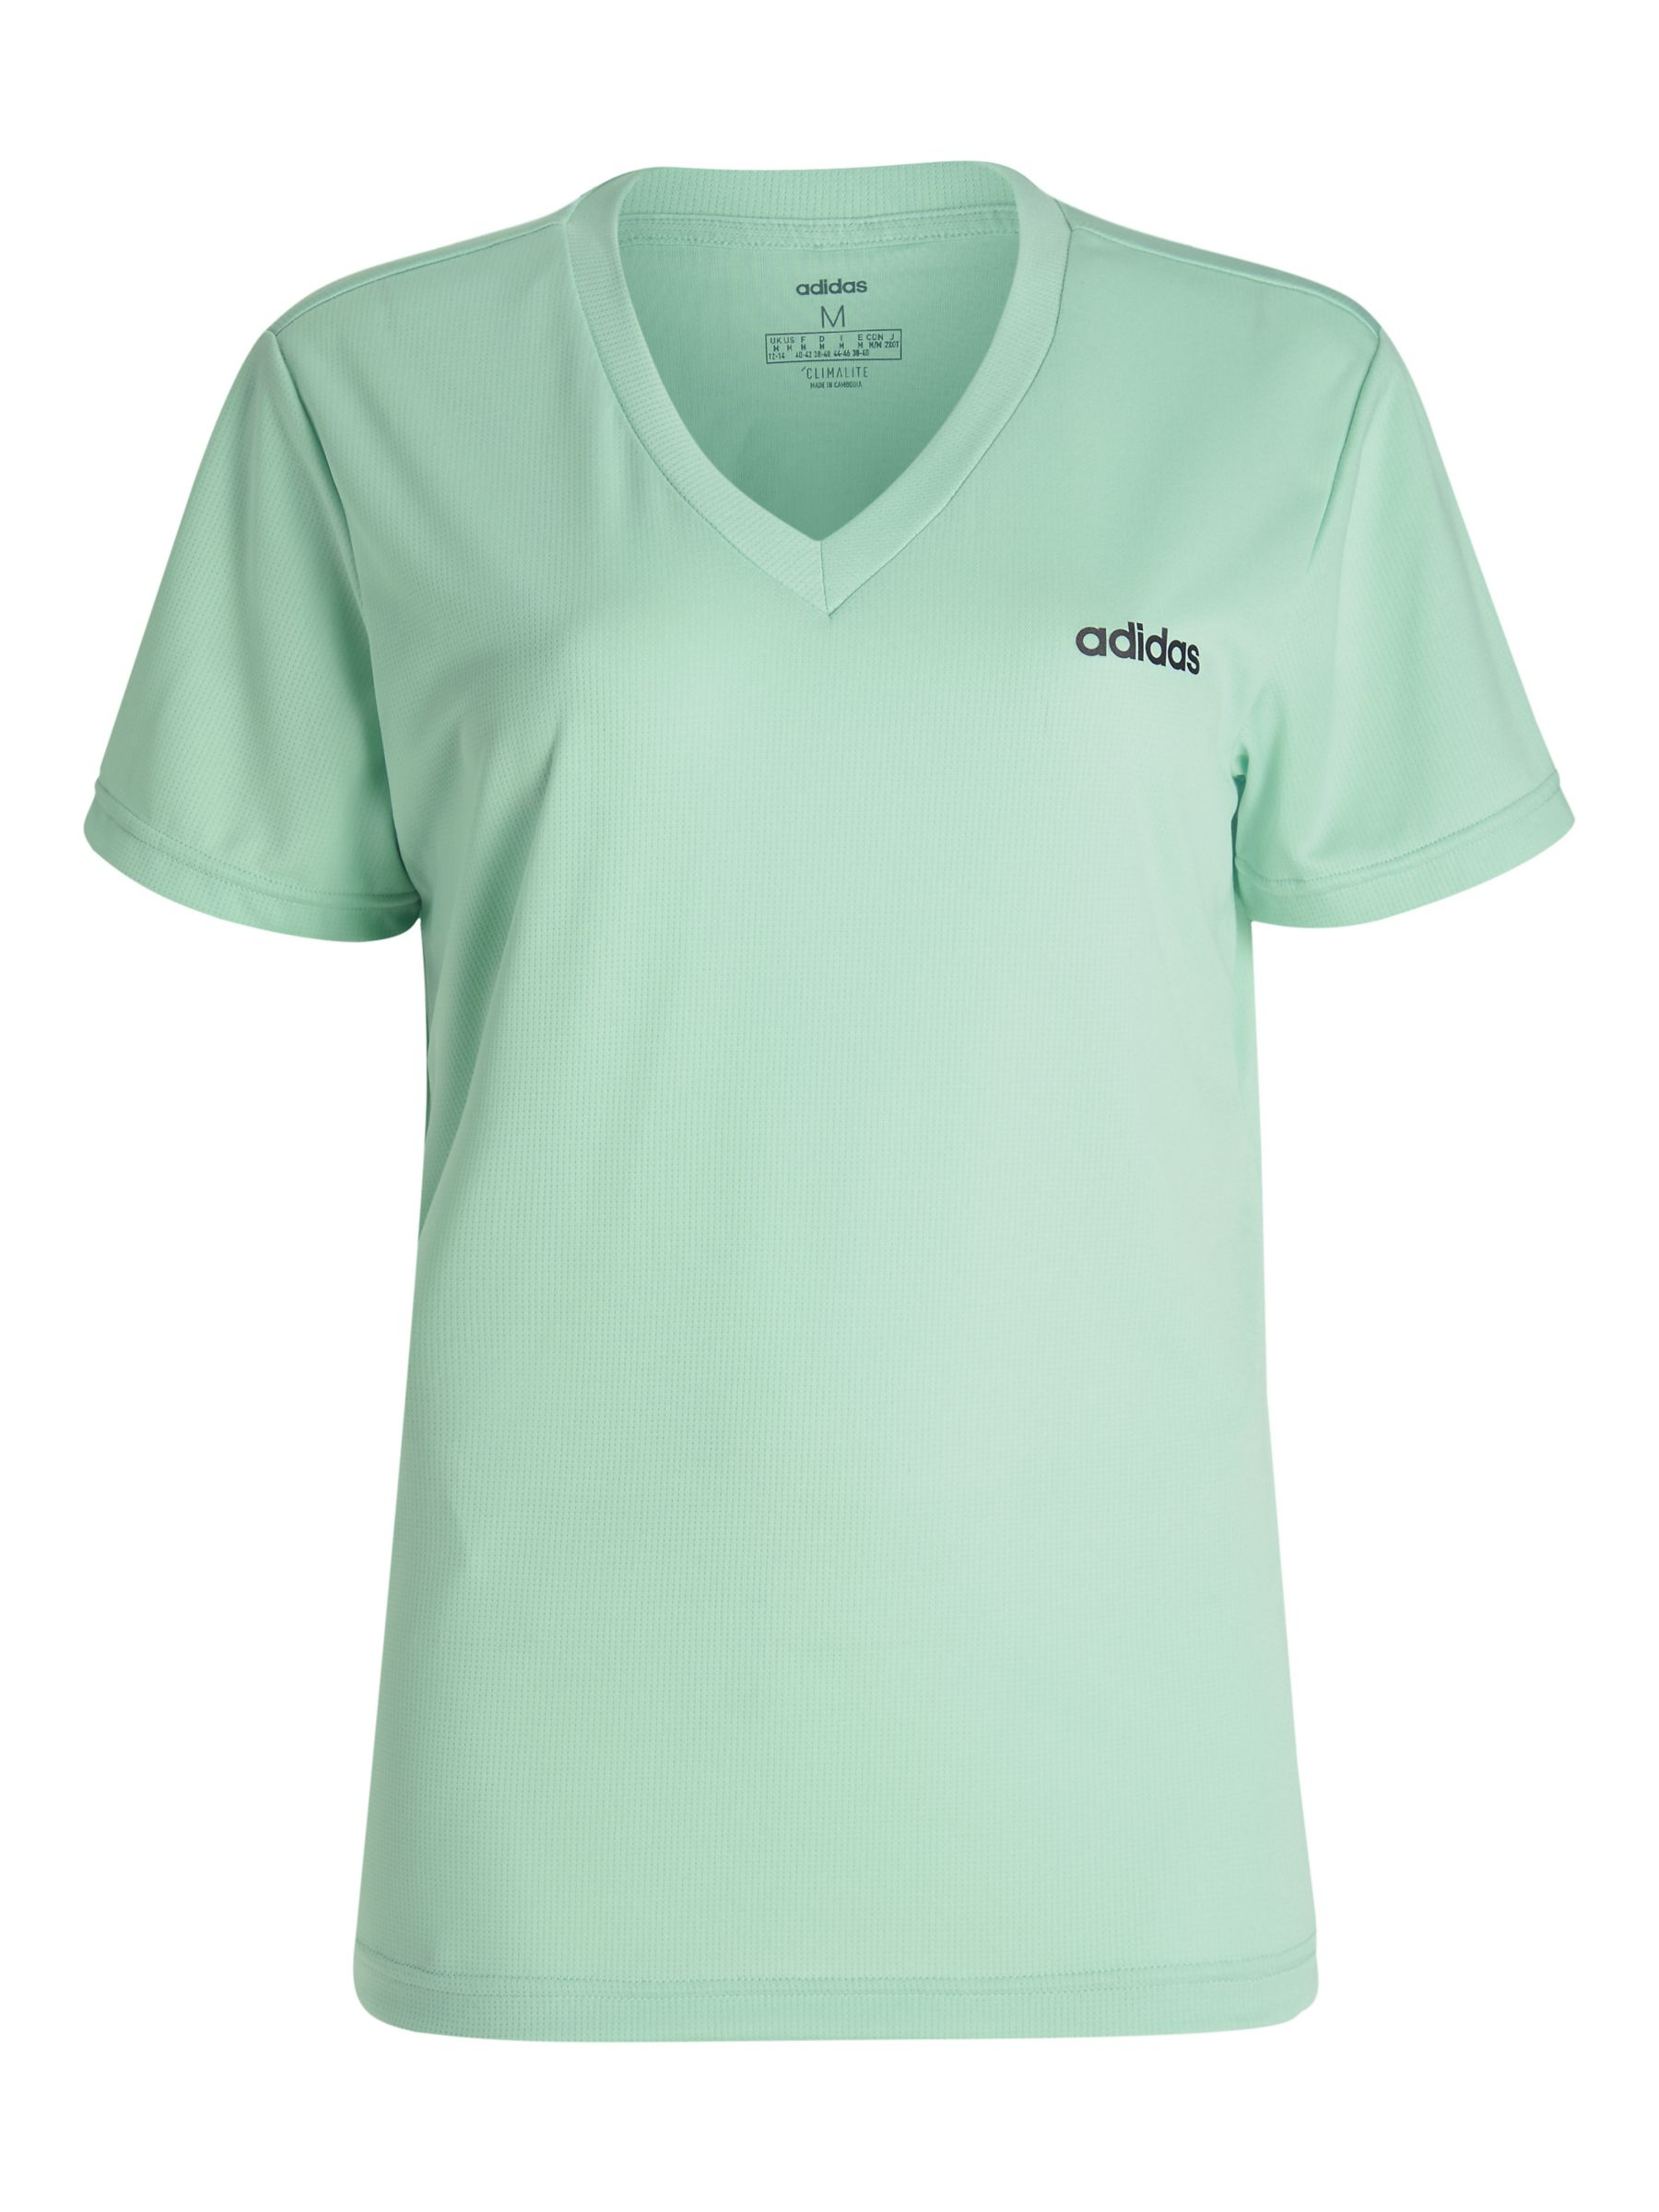 Adidas adidas Designed 2 Move Training Top, Green Tint